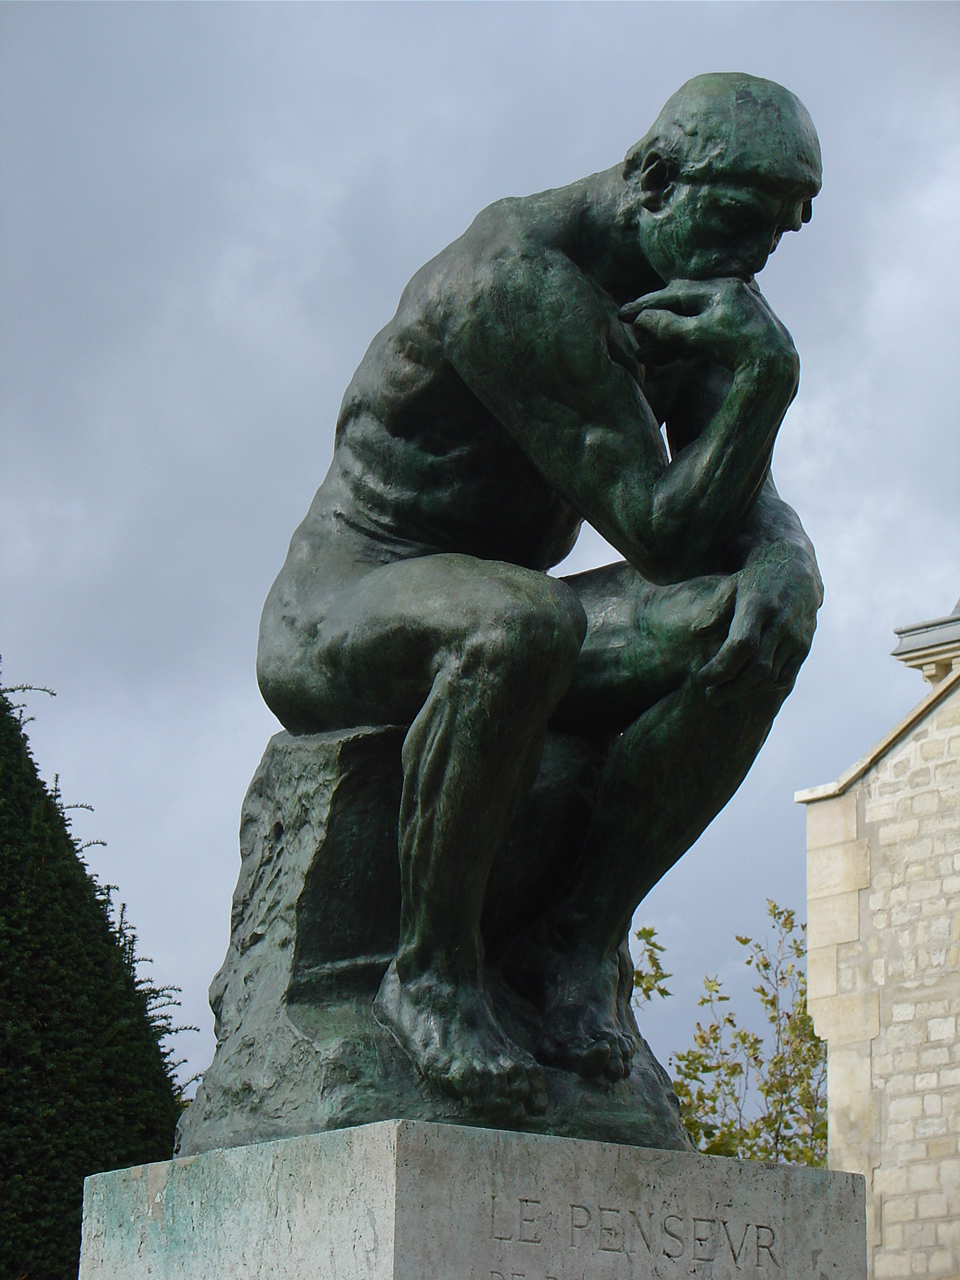 Image of Auguste Rodin's Thinker statute